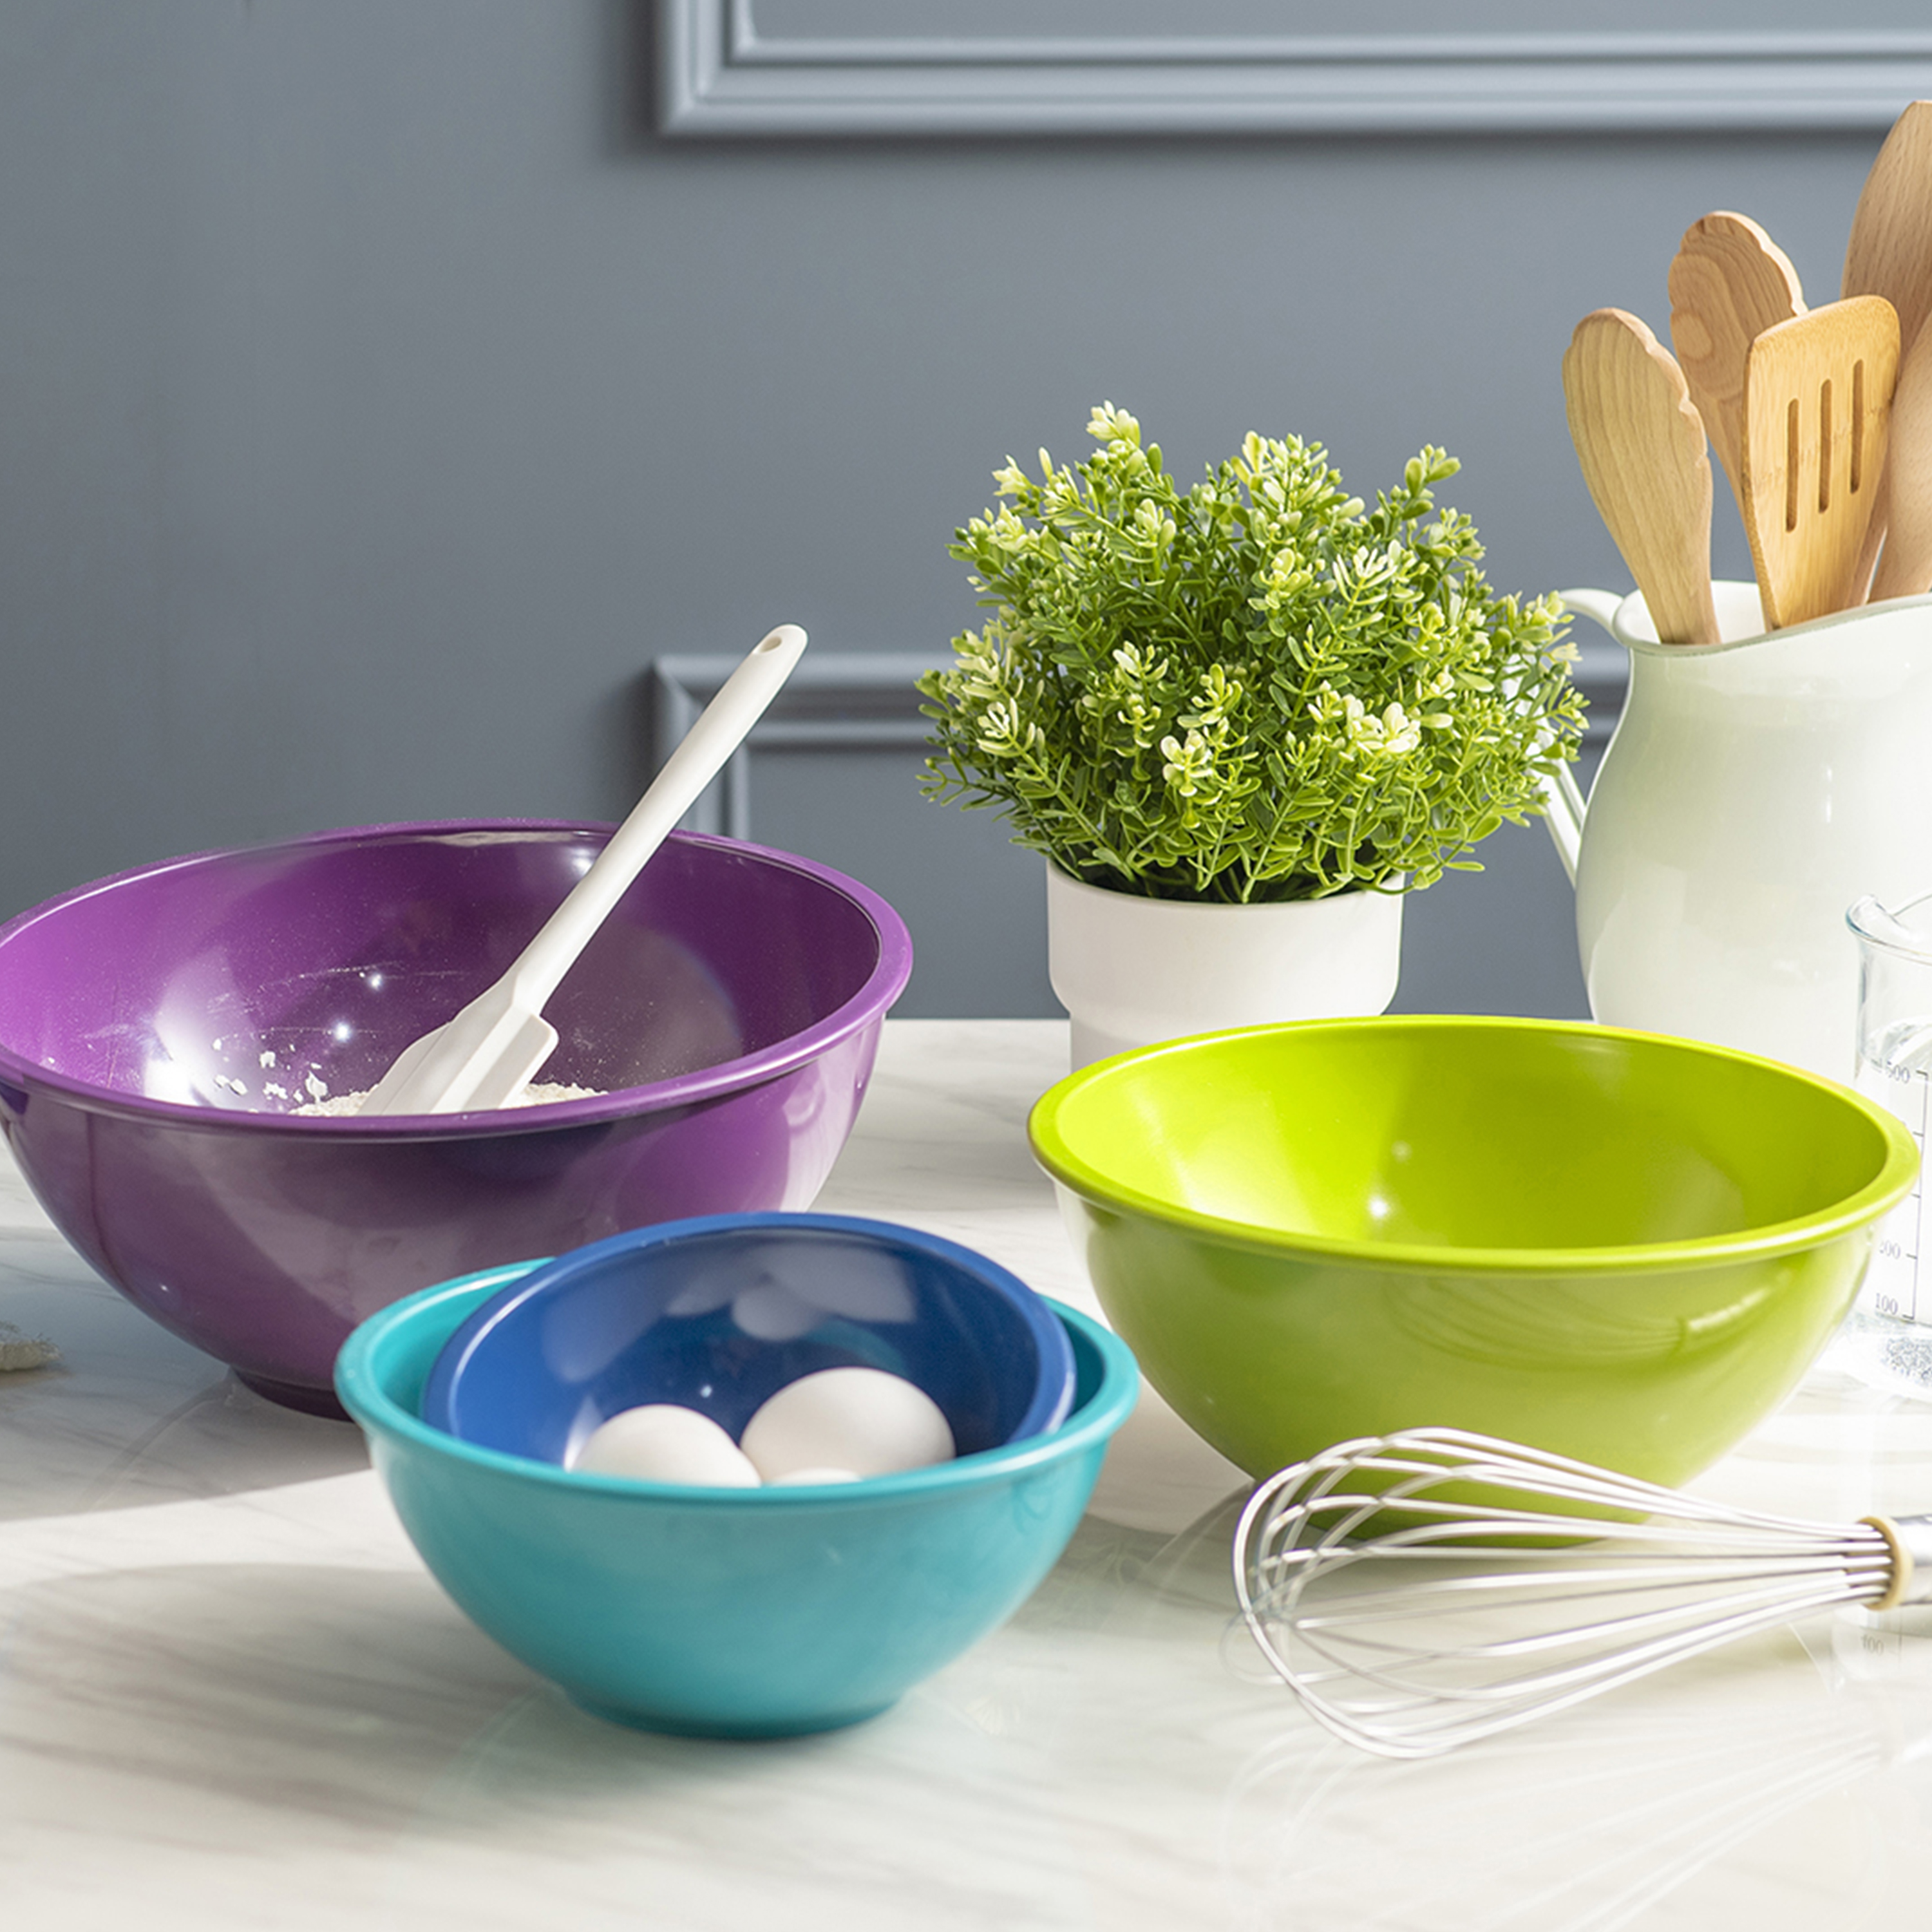 Colorway Plastic Serving and Mixing Bowl Set, Blue and Red, 5-piece set slideshow image 8